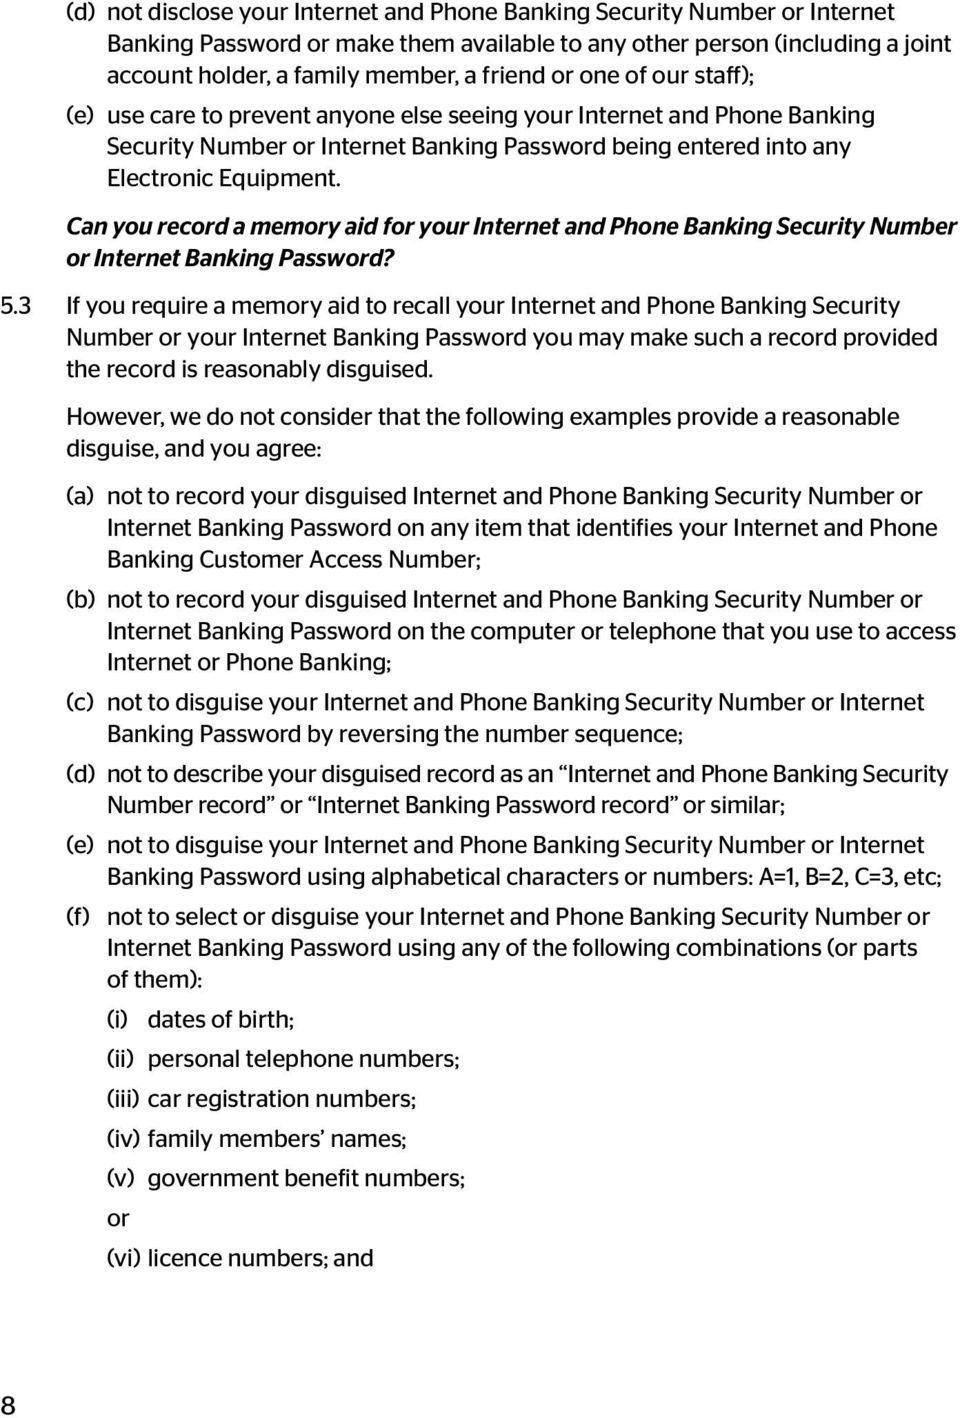 Can you record a memory aid for your Internet and Phone Banking Security Number or Internet Banking Password? 5.